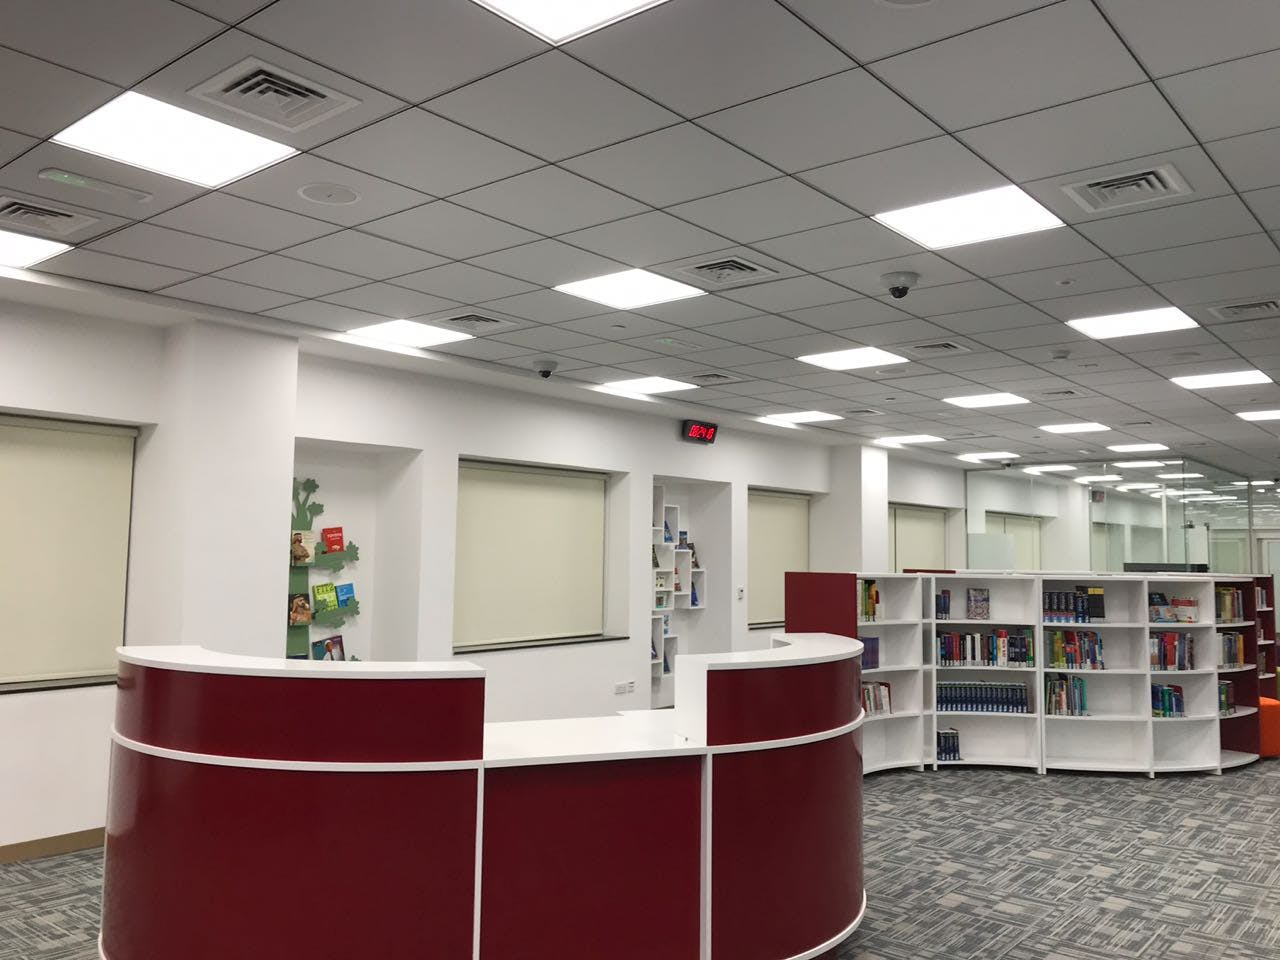 office lighting solutions. Lighting Is The Most Significant Part Of Workplace Physical Conditions. Proper Involves Adequate Amount Light, Dispersal And Diffusion, Office Solutions E